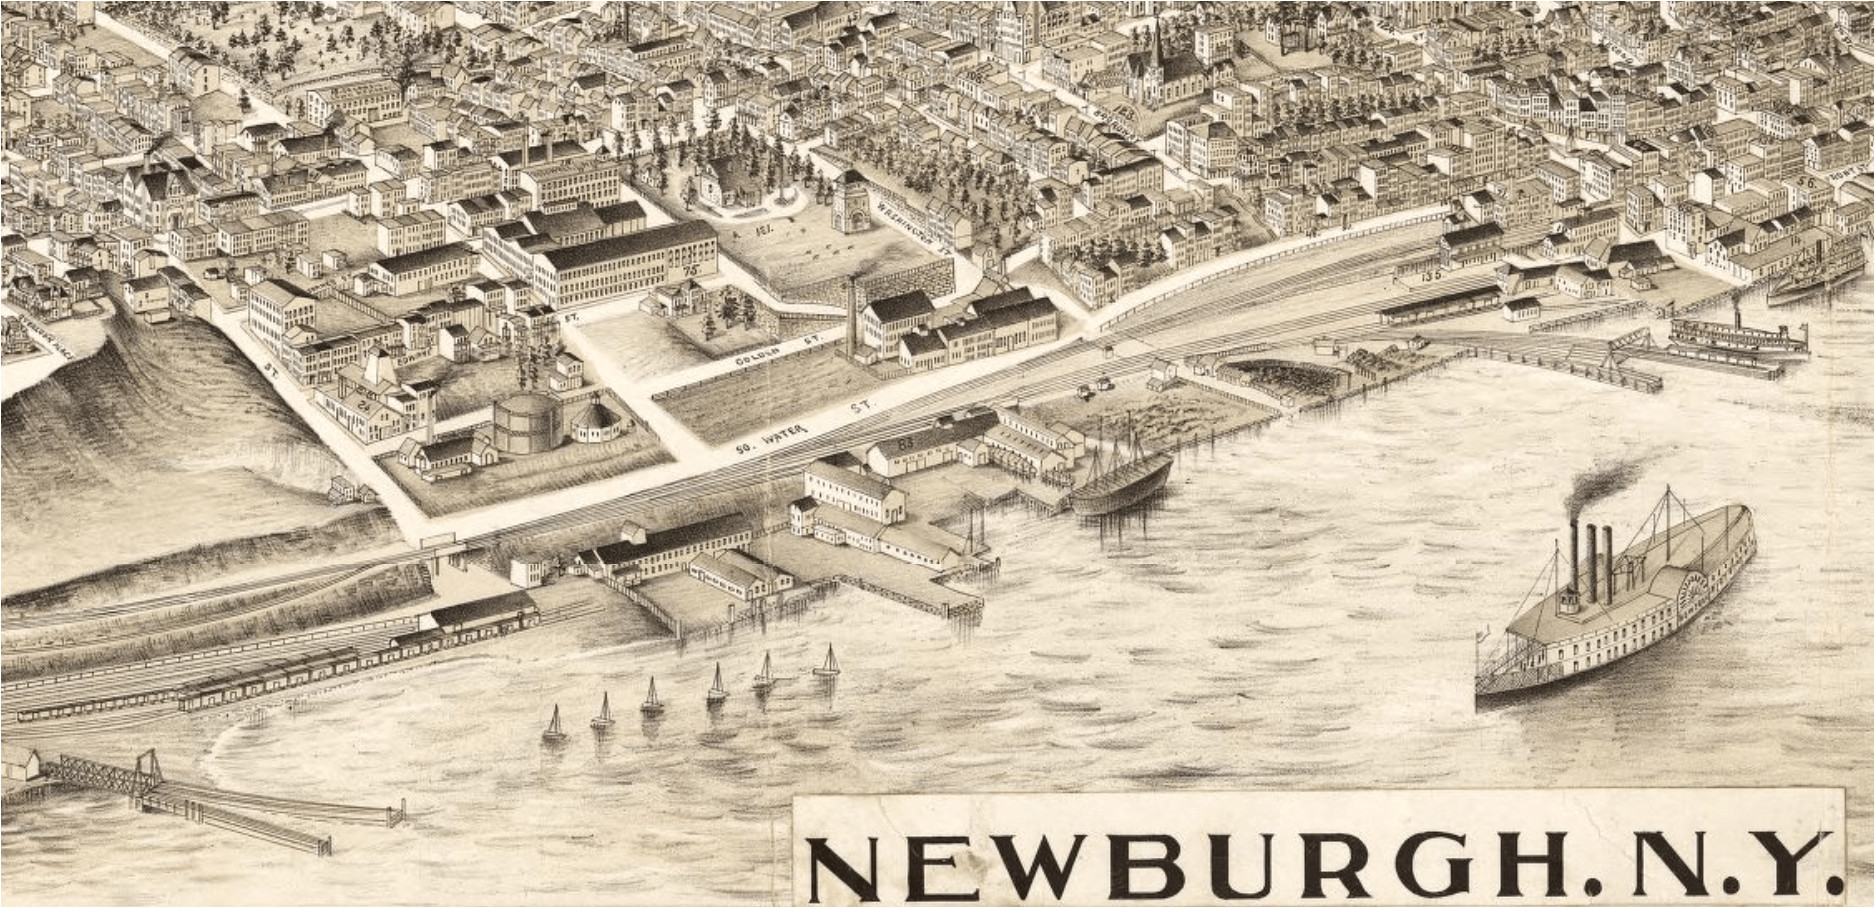 discover newburgh s east end historic districts history architecture and charm